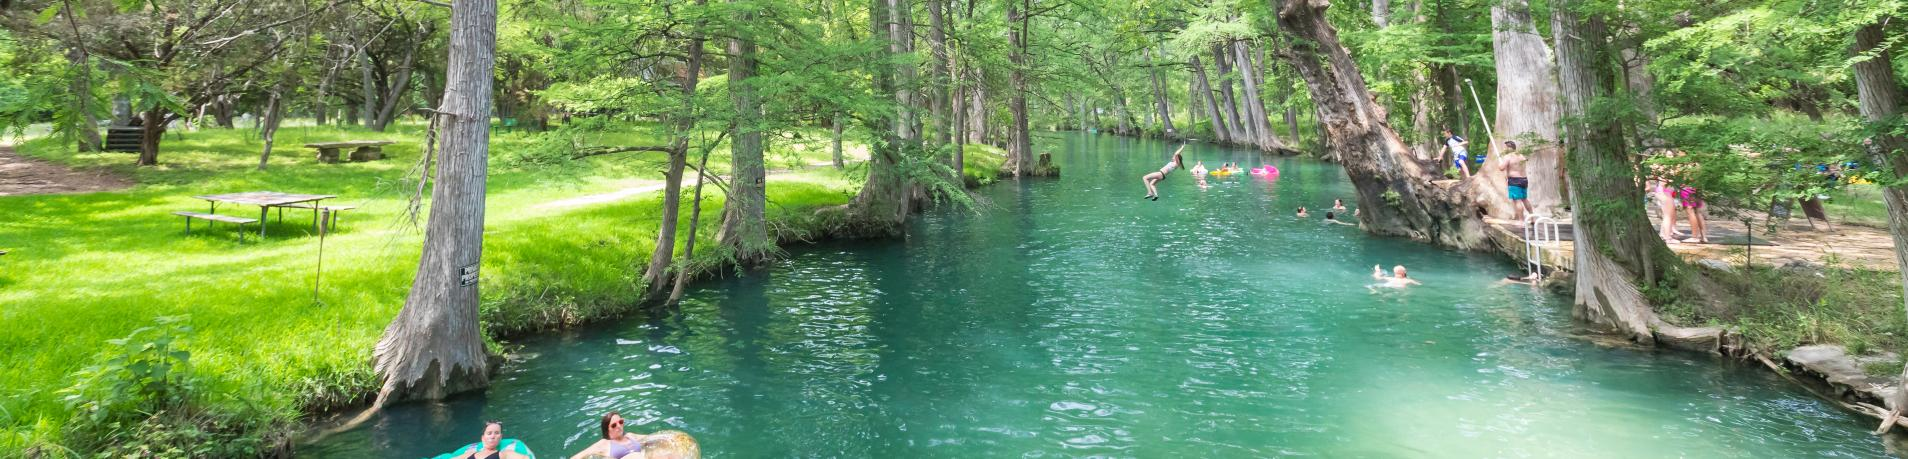 7 of the Best Swimming Holes in & Around Austin, TX | Austin